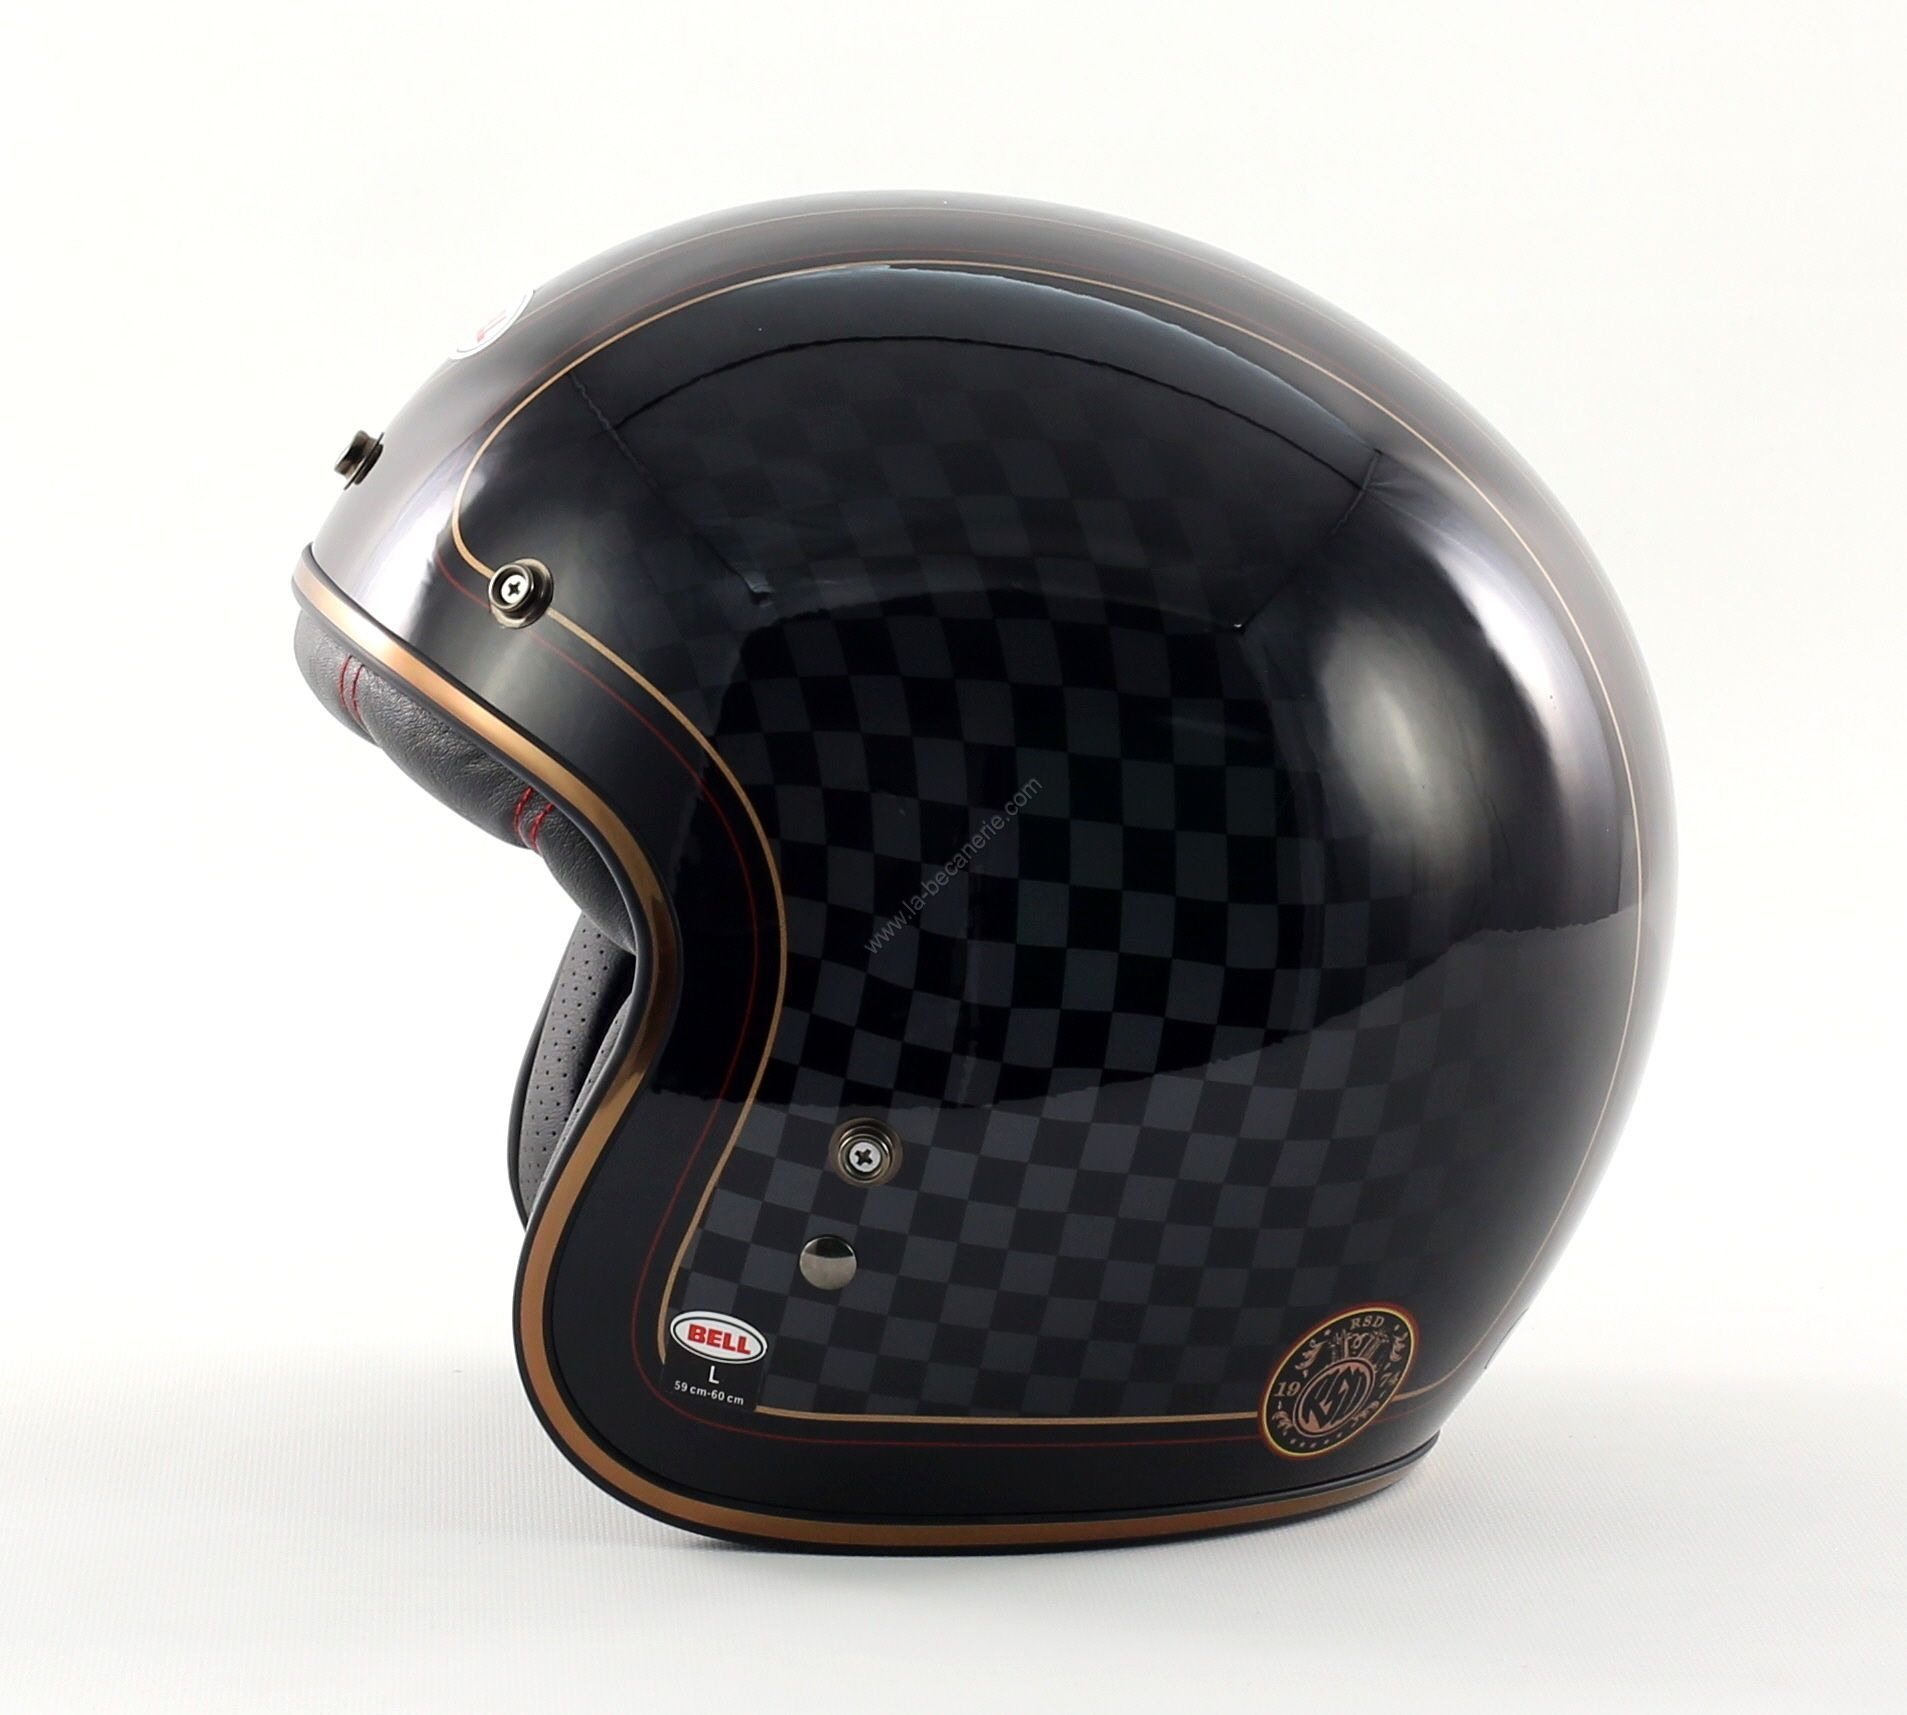 casque moto vintage bell casque moto custom. Black Bedroom Furniture Sets. Home Design Ideas